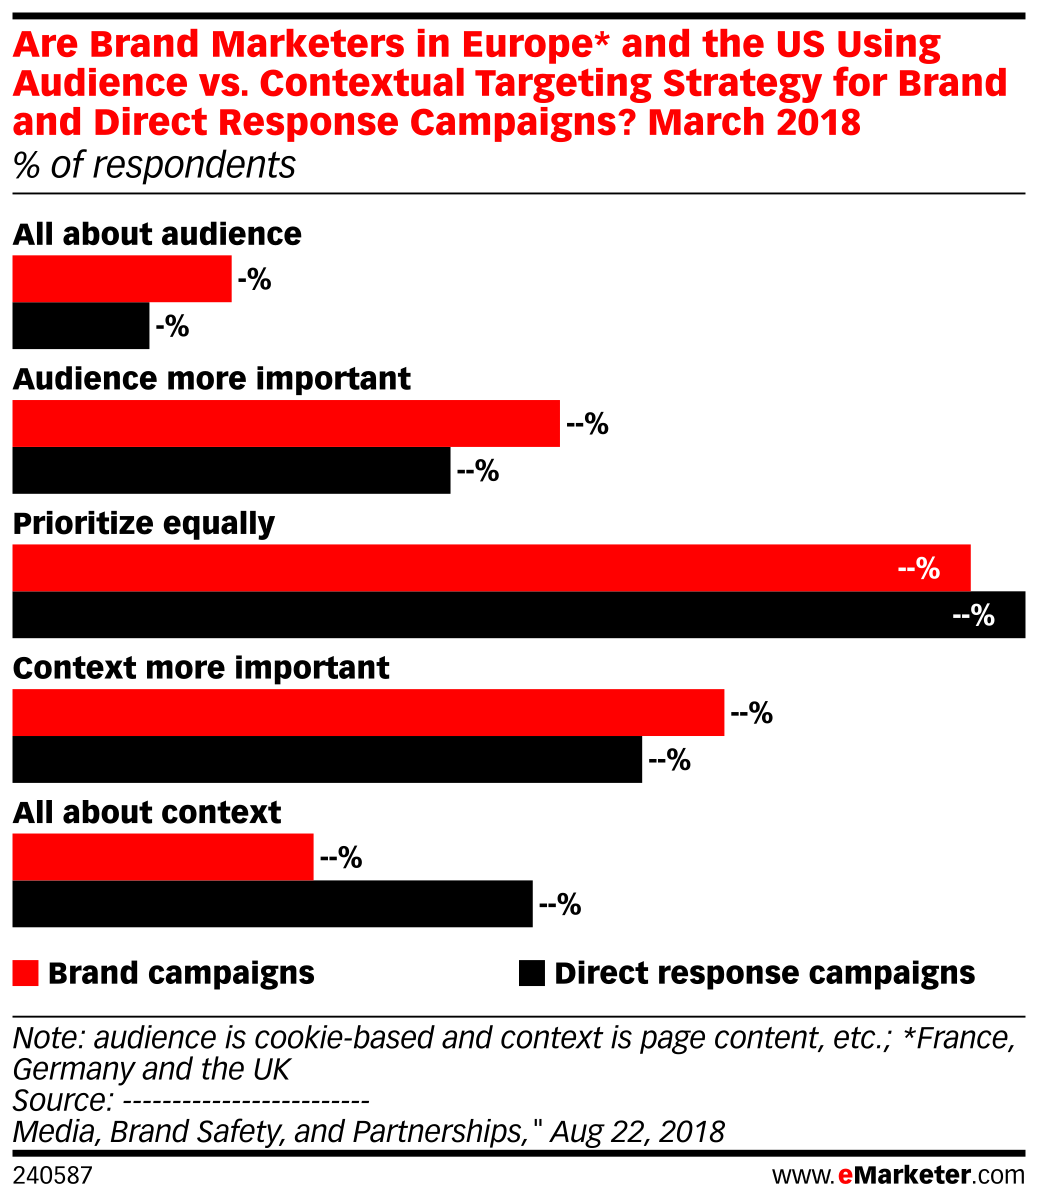 Are Brand Marketers in Europe* and the US Using Audience vs. Contextual Targeting Strategy for Brand and Direct Response Campaigns? March 2018 (% of respondents)